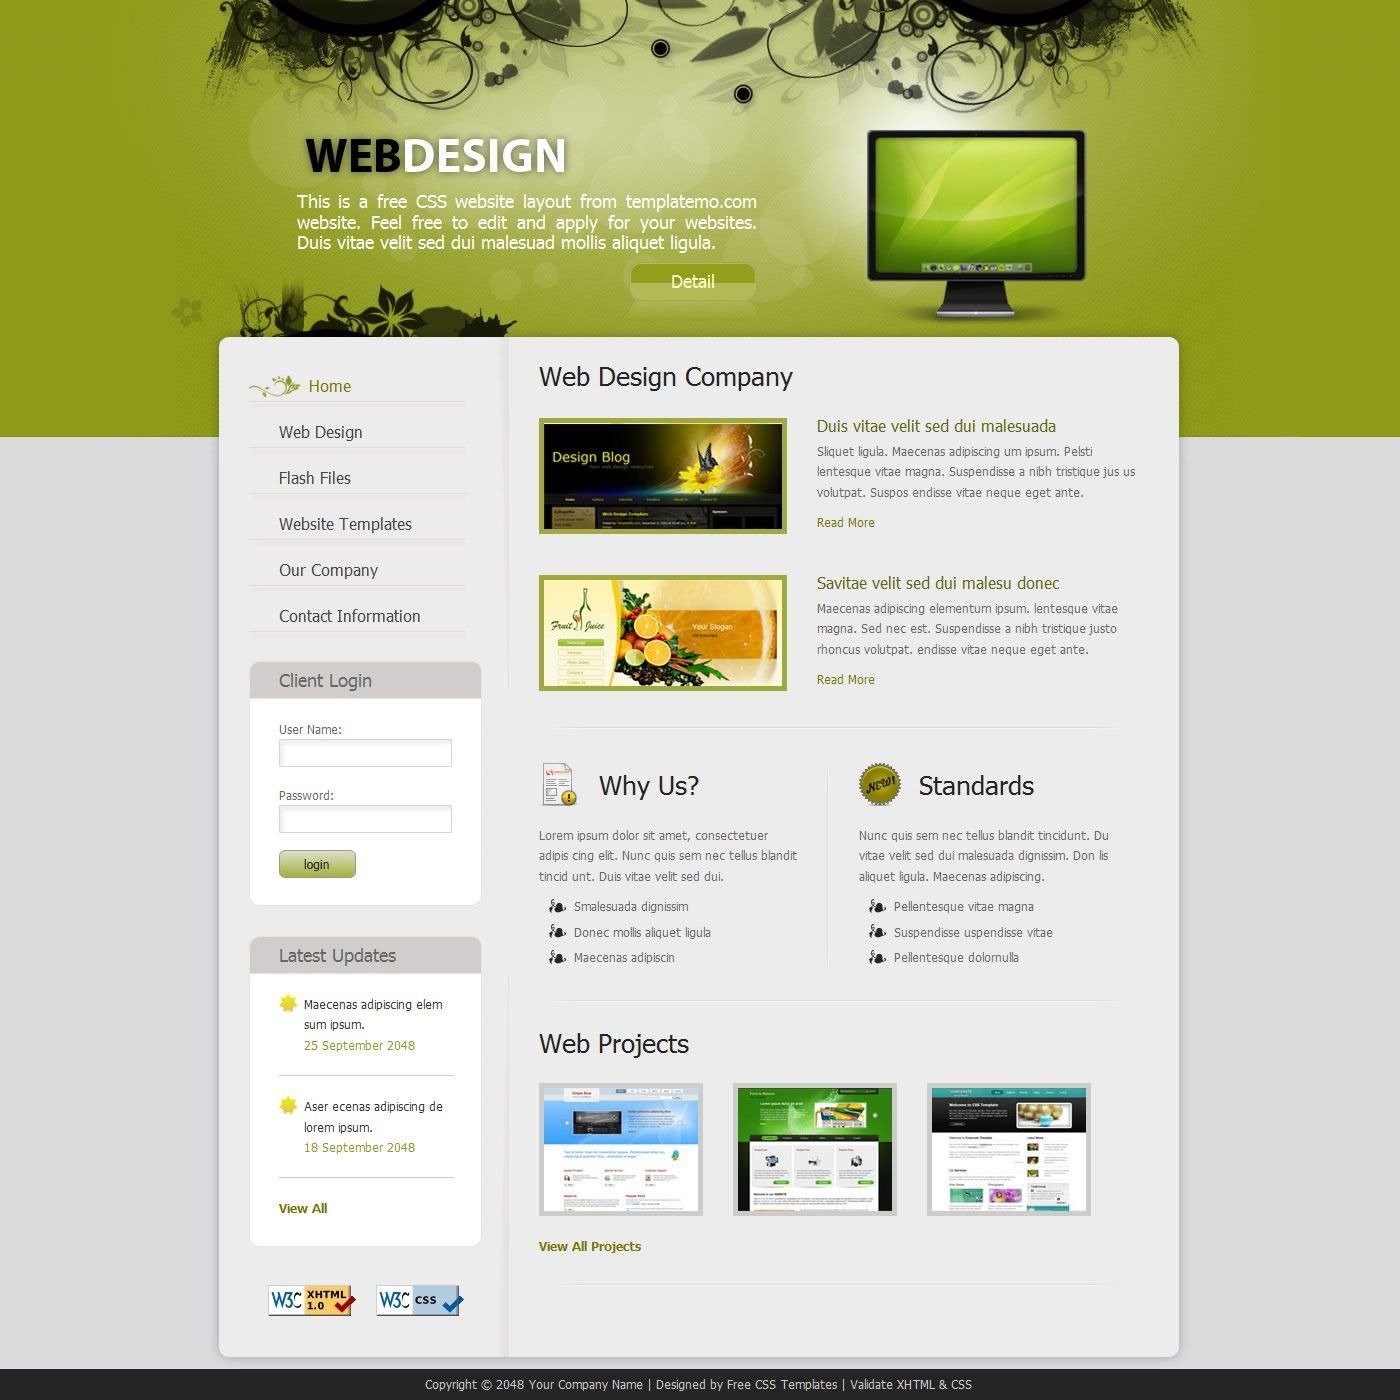 007 Wonderful Website Design Template Free Picture  Asp.net Web Download PsdFull